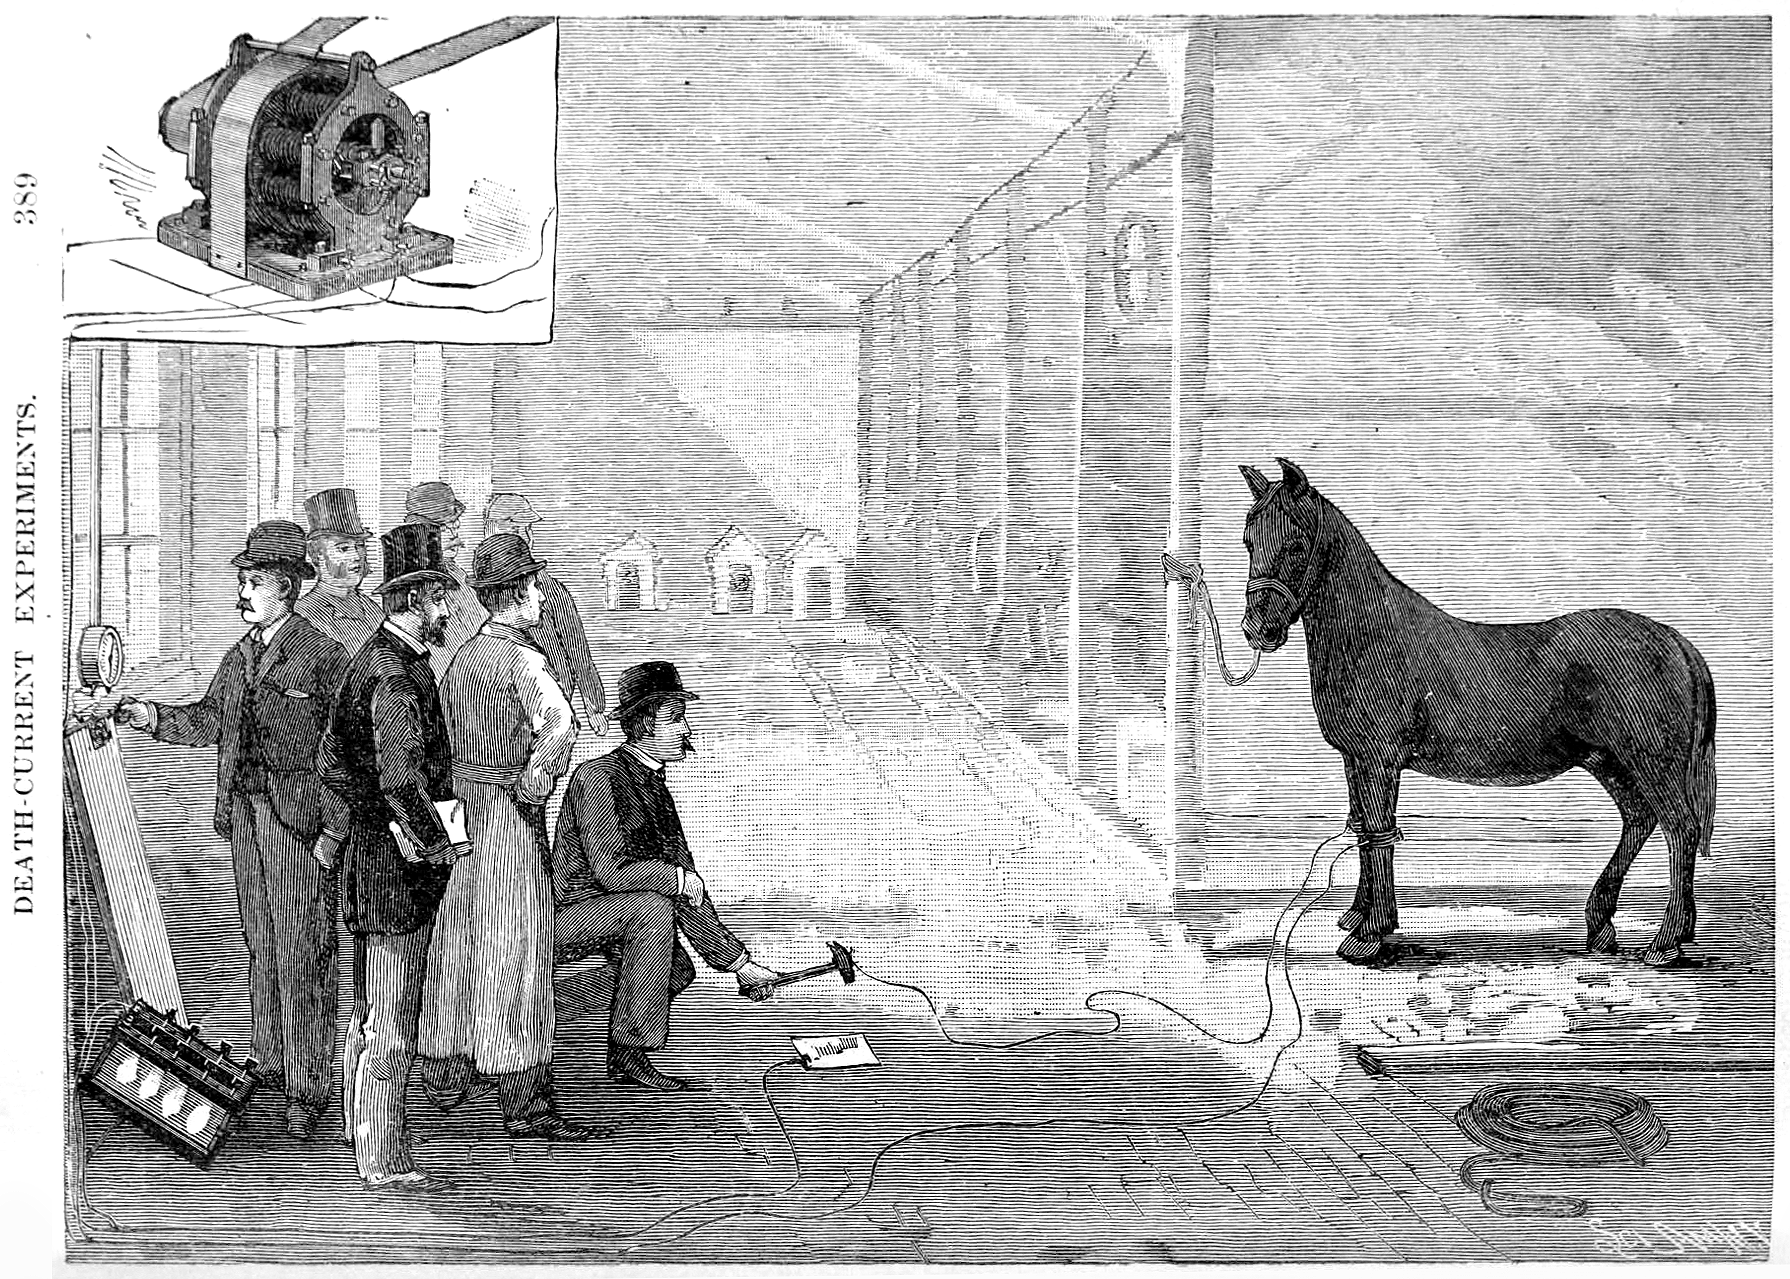 https://upload.wikimedia.org/wikipedia/commons/a/a8/Harold_Pitney_Brown_edison_electrocute_horse_1888_New_York_Medico-Legal_Journal_vol_6_issue_4.png